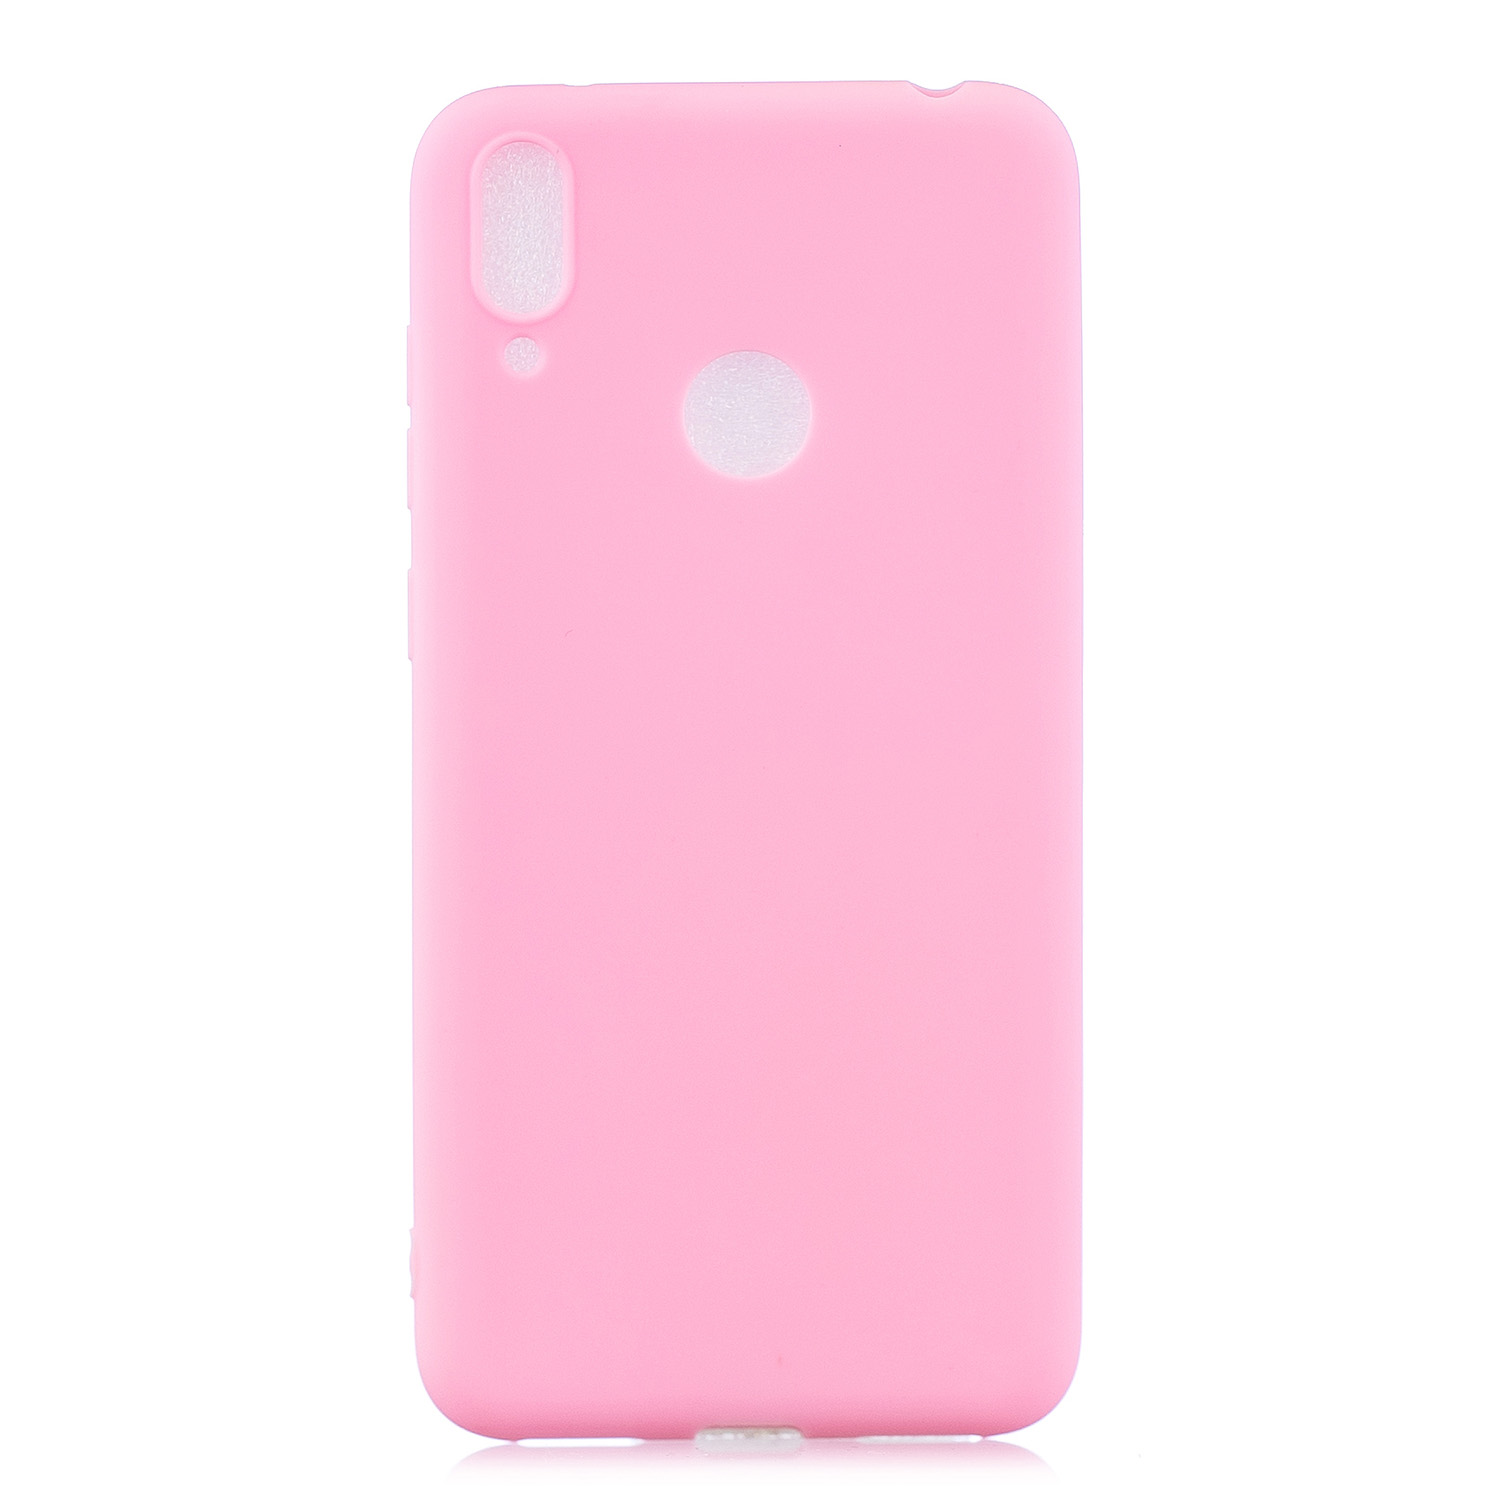 For HUAWEI Y7 2019 Lovely Candy Color Matte TPU Anti-scratch Non-slip Protective Cover Back Case dark pink